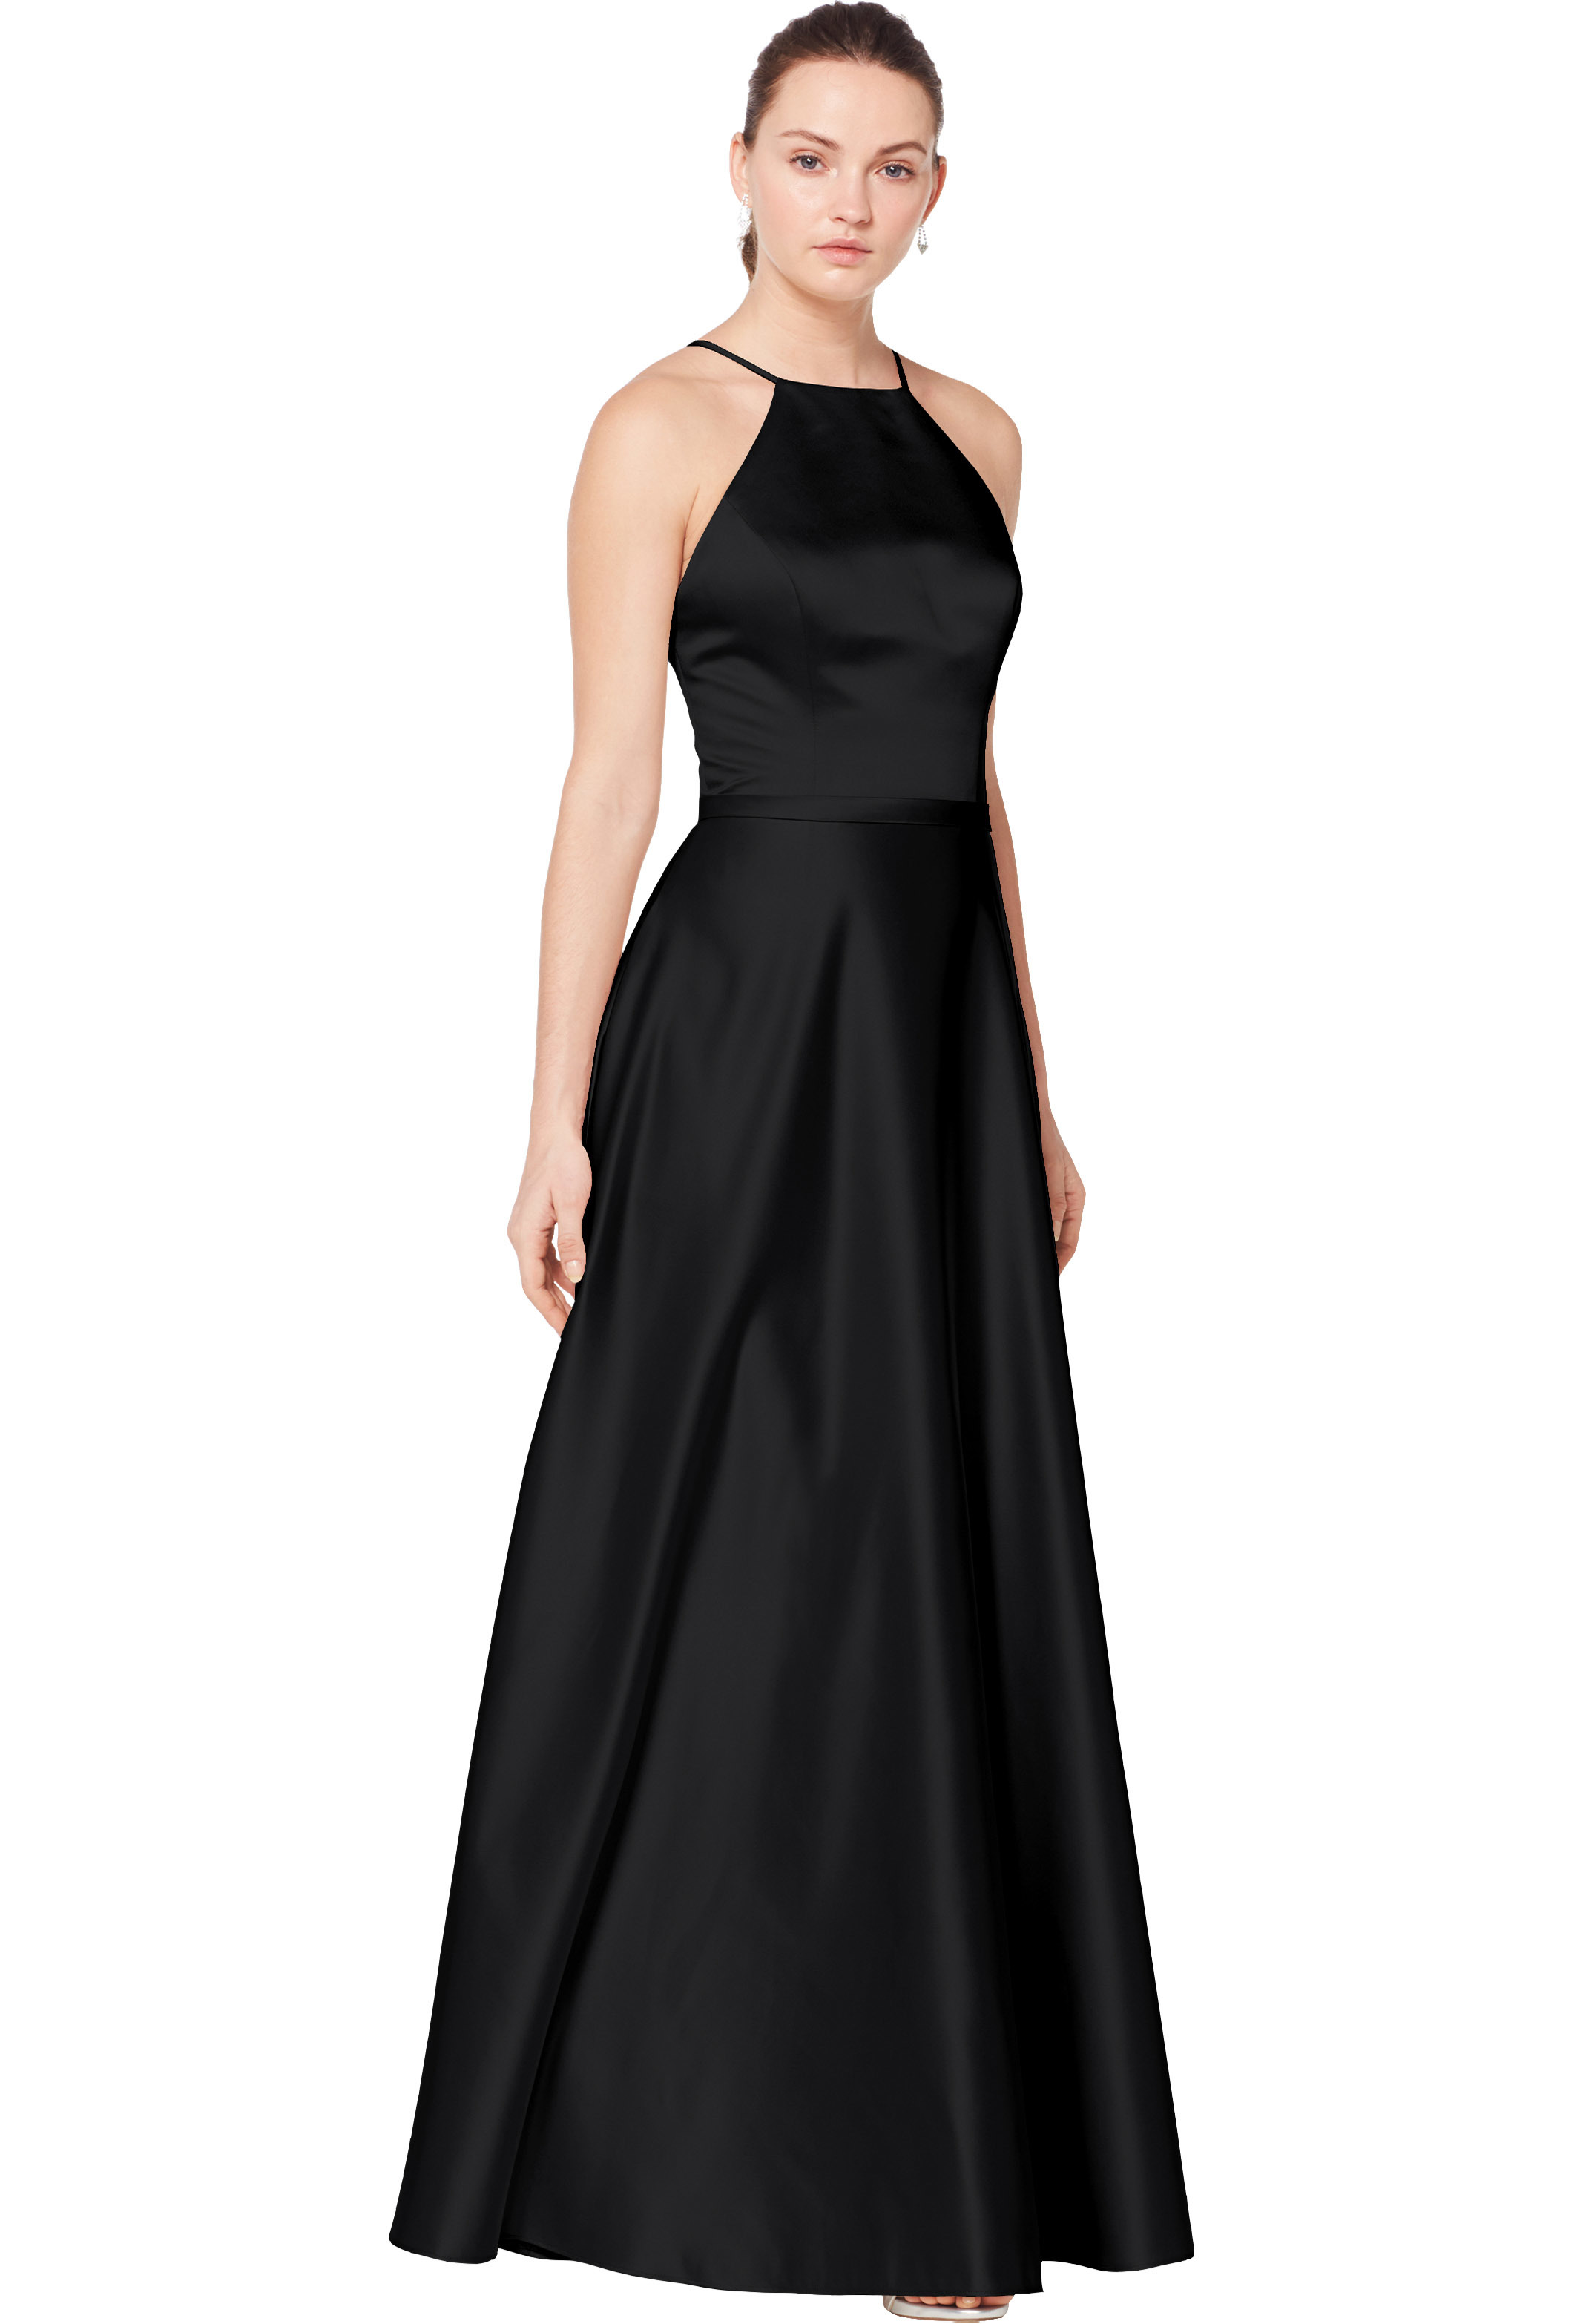 Bill Levkoff EURO BLACK European Satin Square A-line gown, $200.00 Front